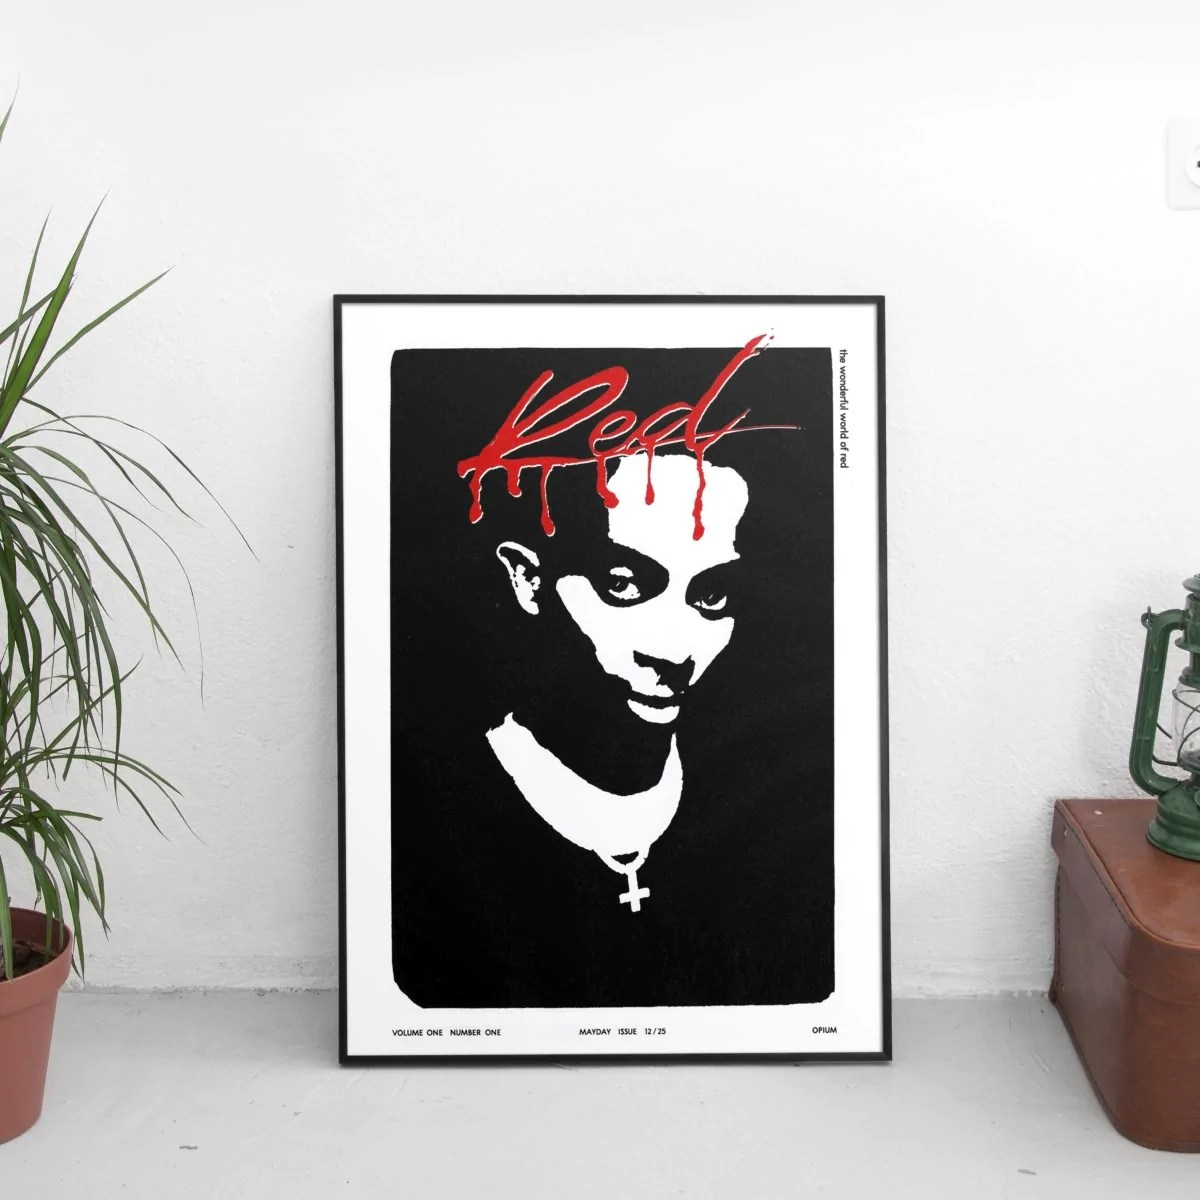 playboi carti whole lotta red cover art poster